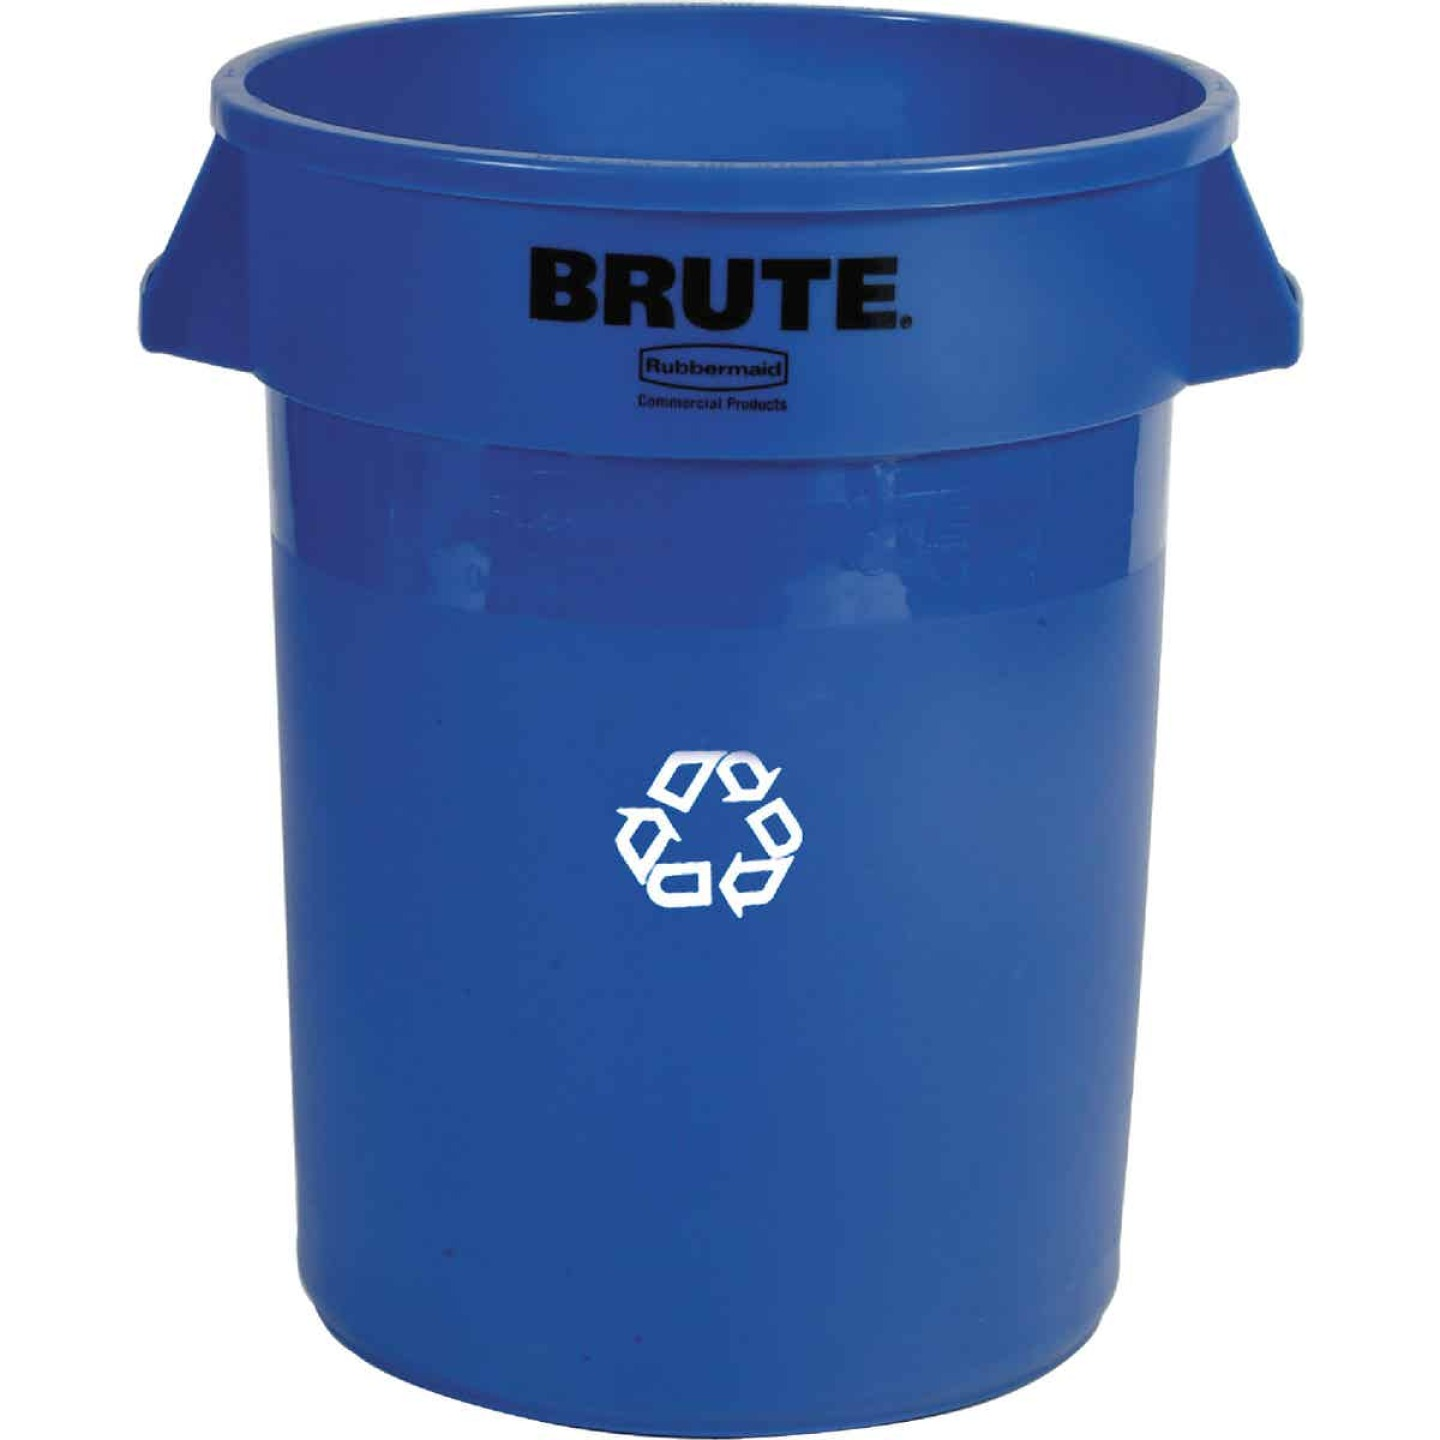 Rubbermaid 32 Gal. Recycling Trash Can Image 1